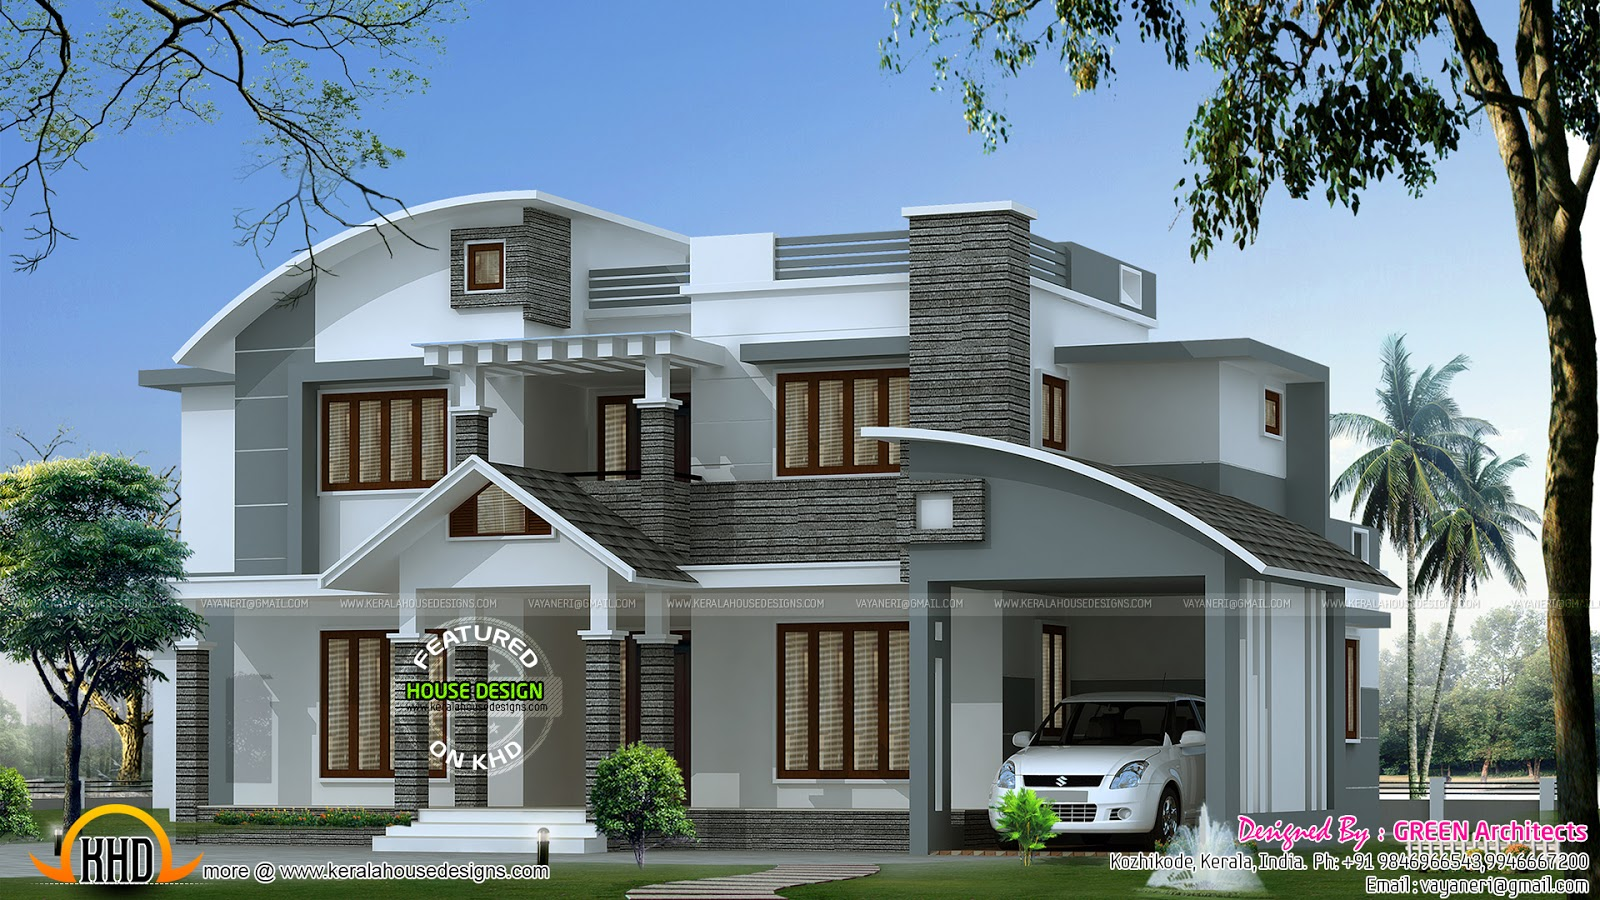 House details ground floor feet flat roof contemporary for Home plans hd images